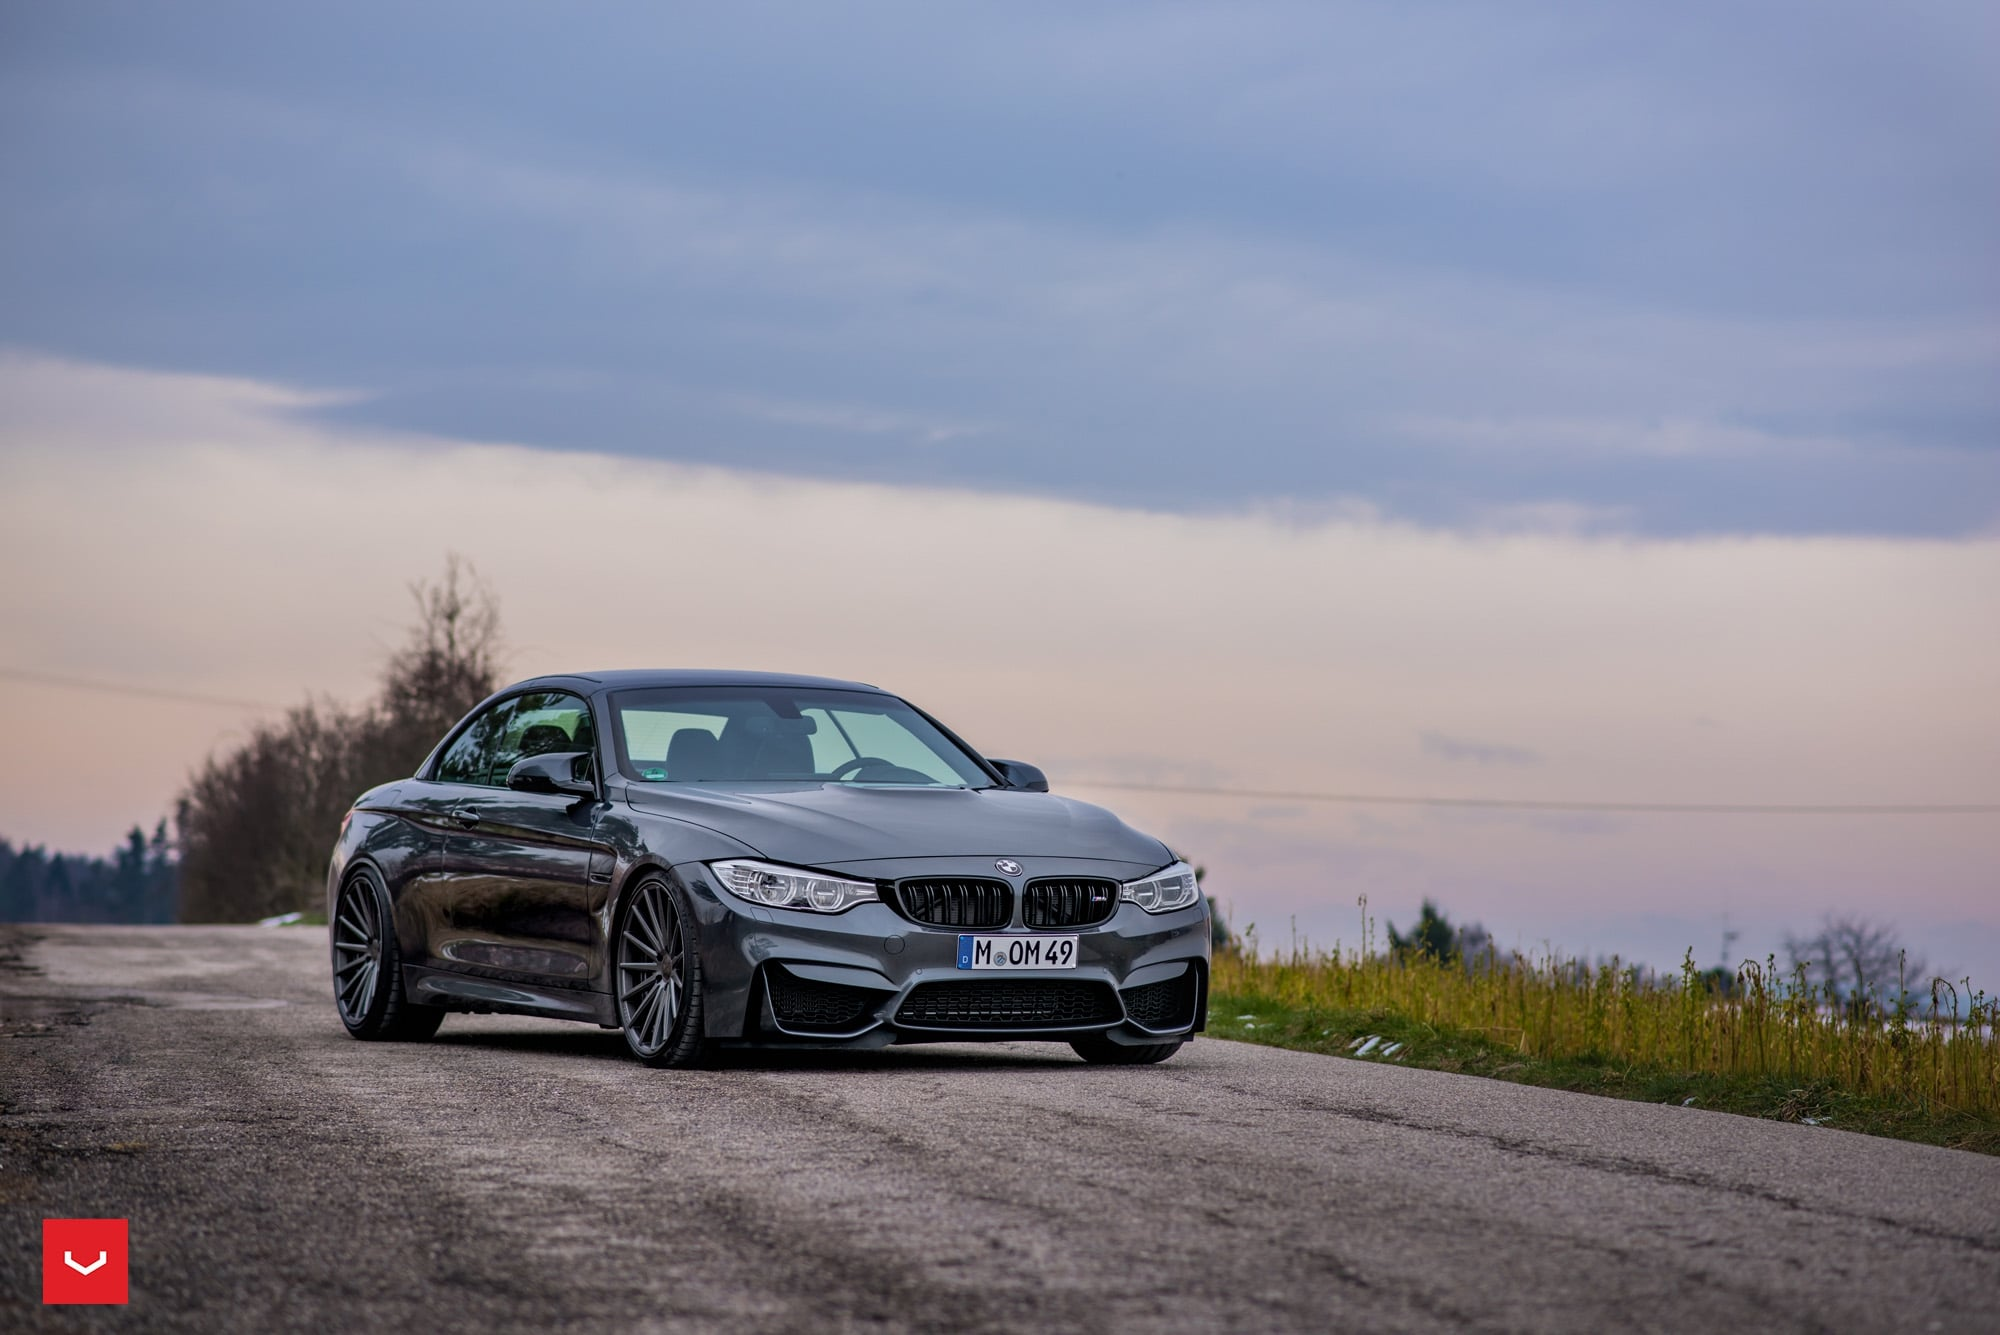 Red Car Wallpaper Download 2016 Bmw M4 Convertible Wallpapers Hd Download